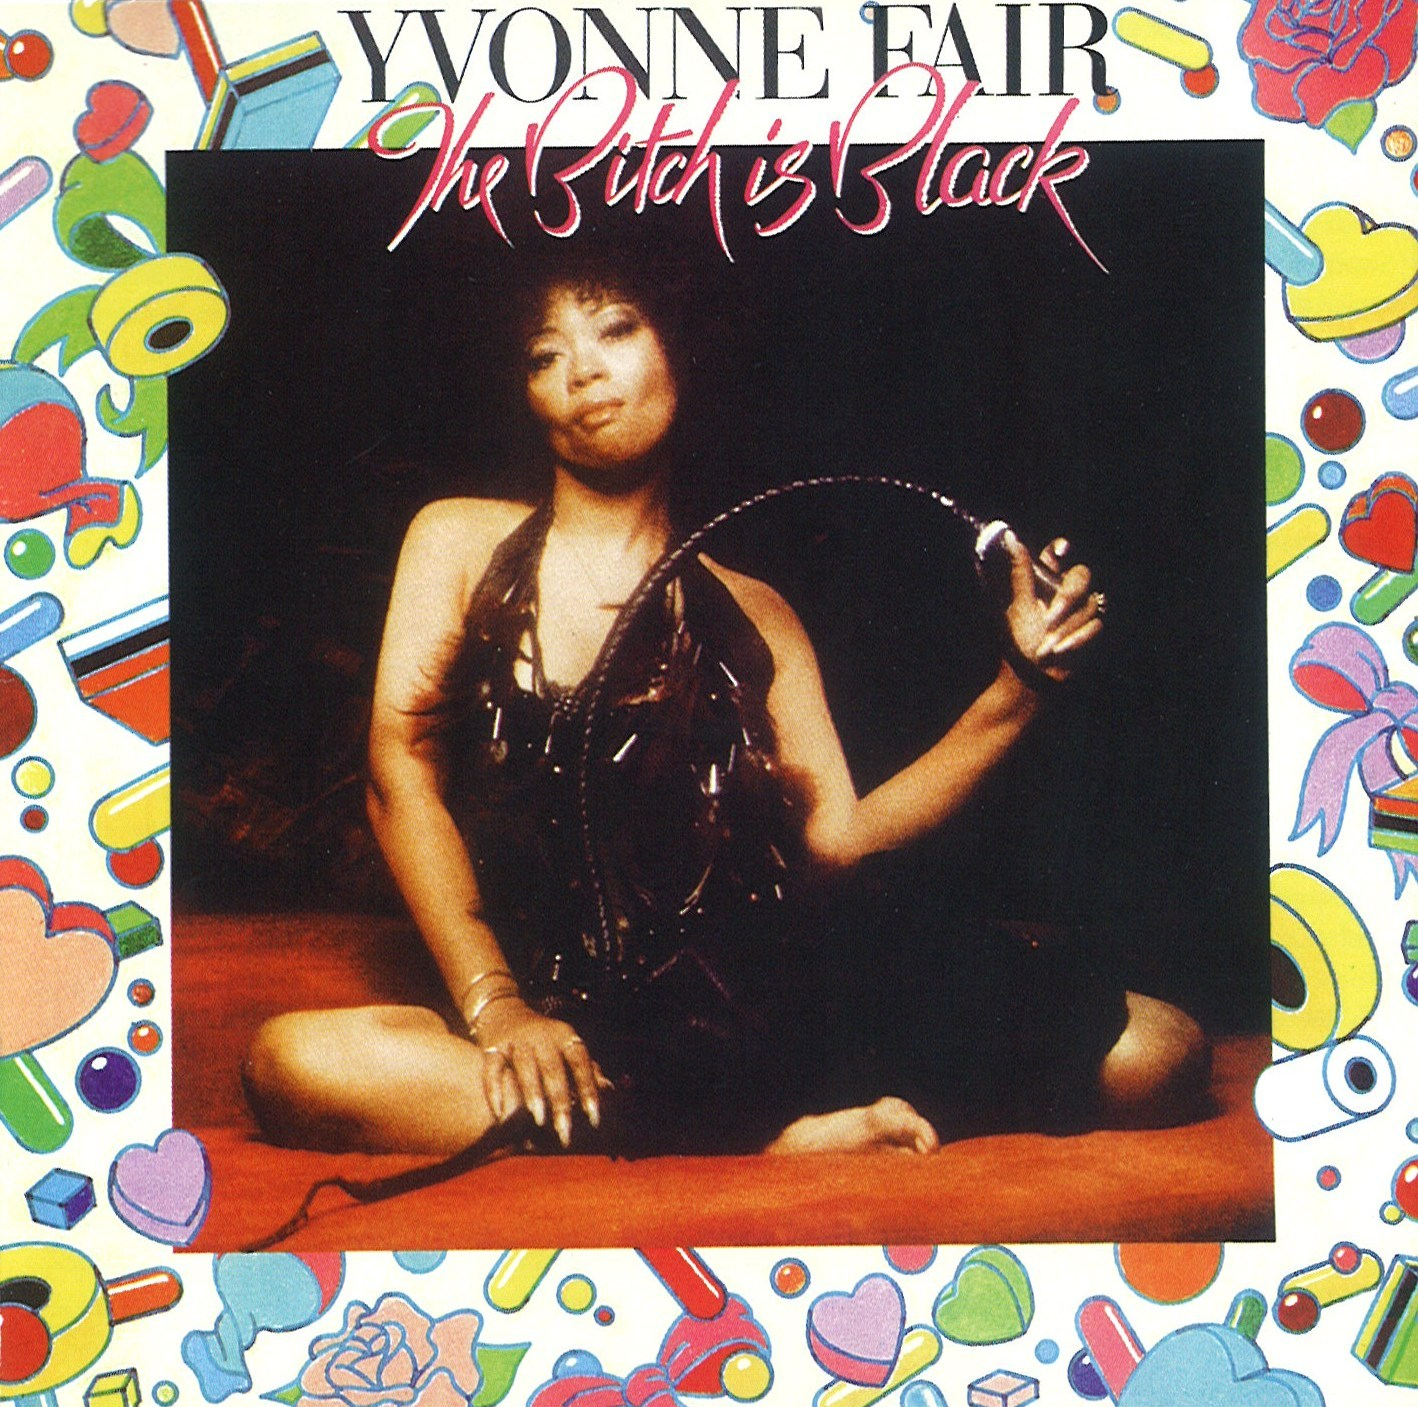 Yvonne Fair - Funky Music Sho Nuff Turns Me On / Let Your Hair Down